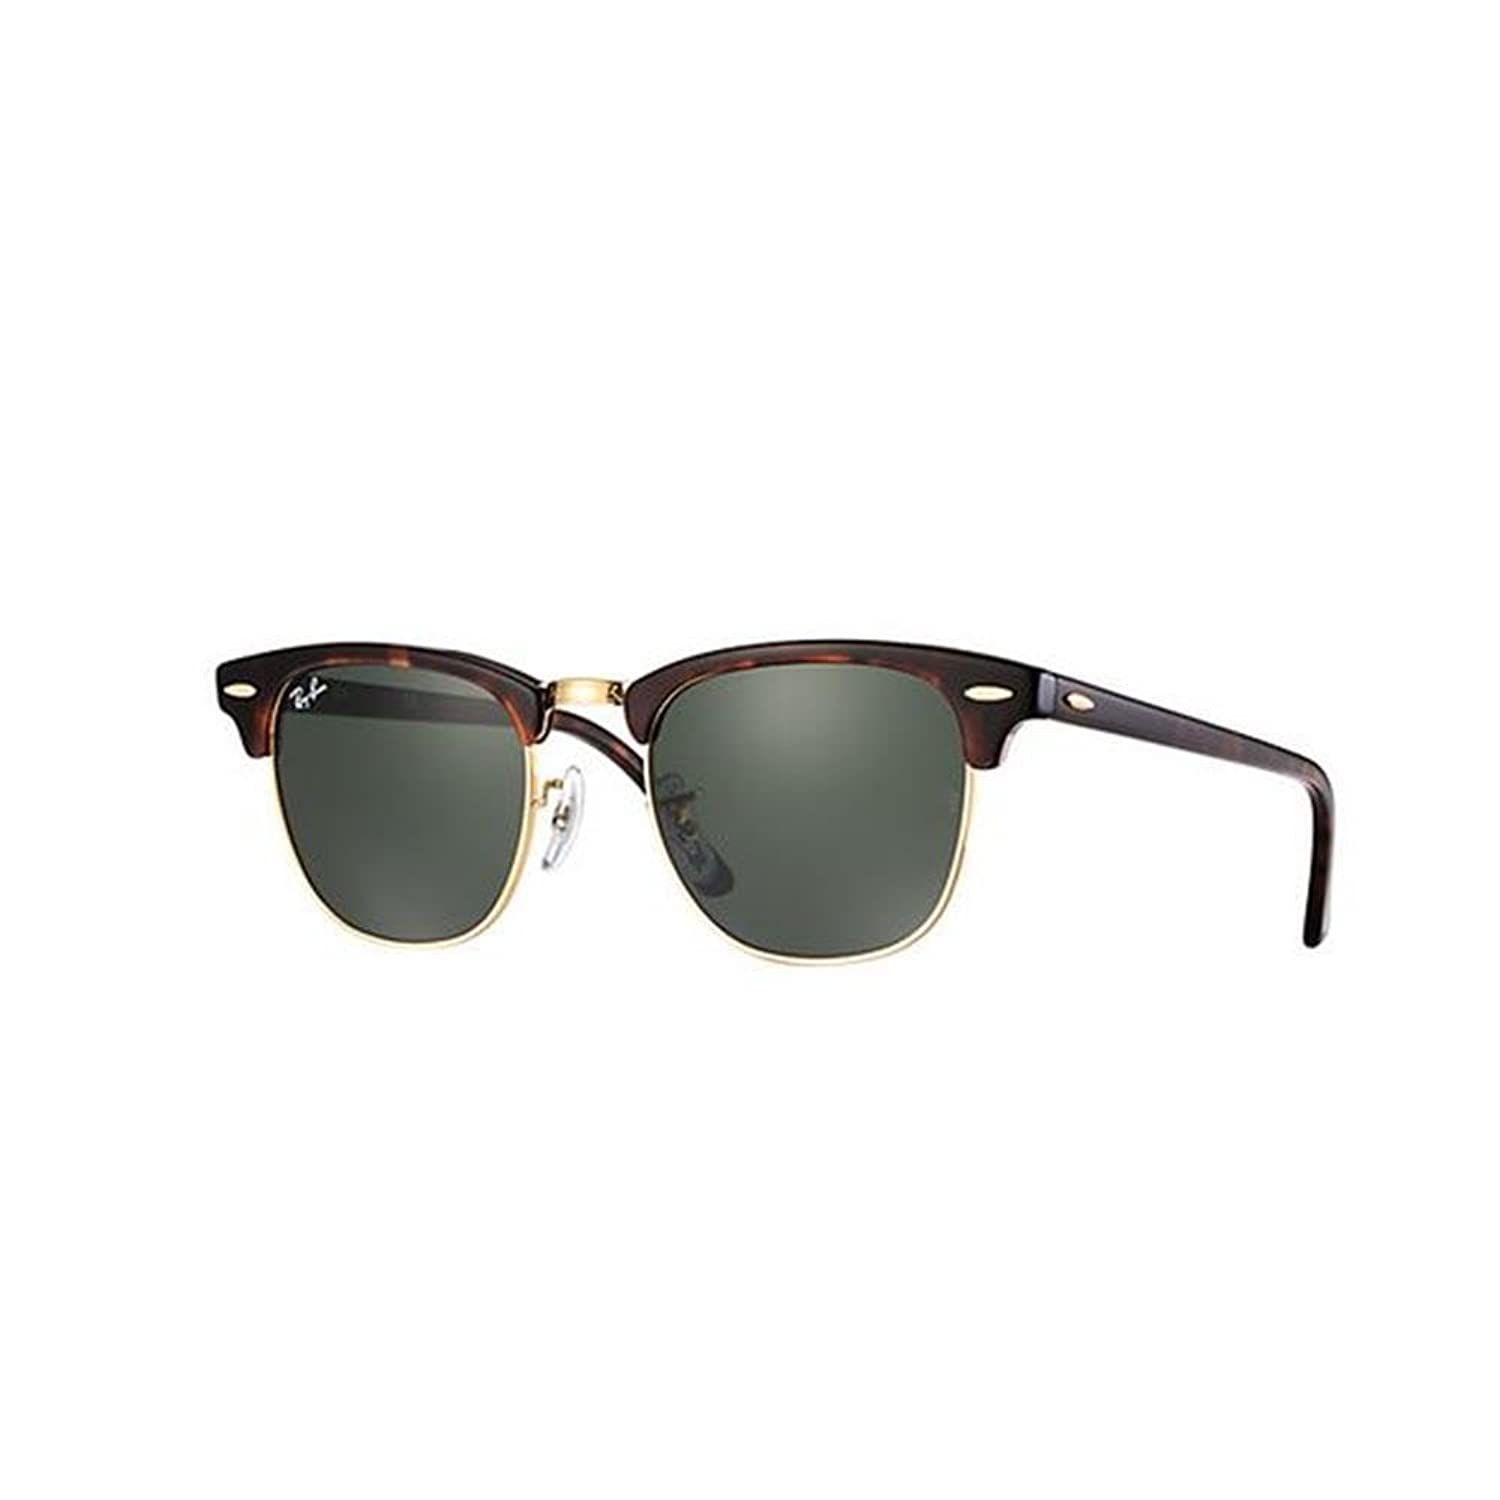 ray ban polarized sunglasses models  amazon: ray ban clubmaster mock tortoise/ arista frame crystal green lenses 49mm non polarized: ray ban: clothing